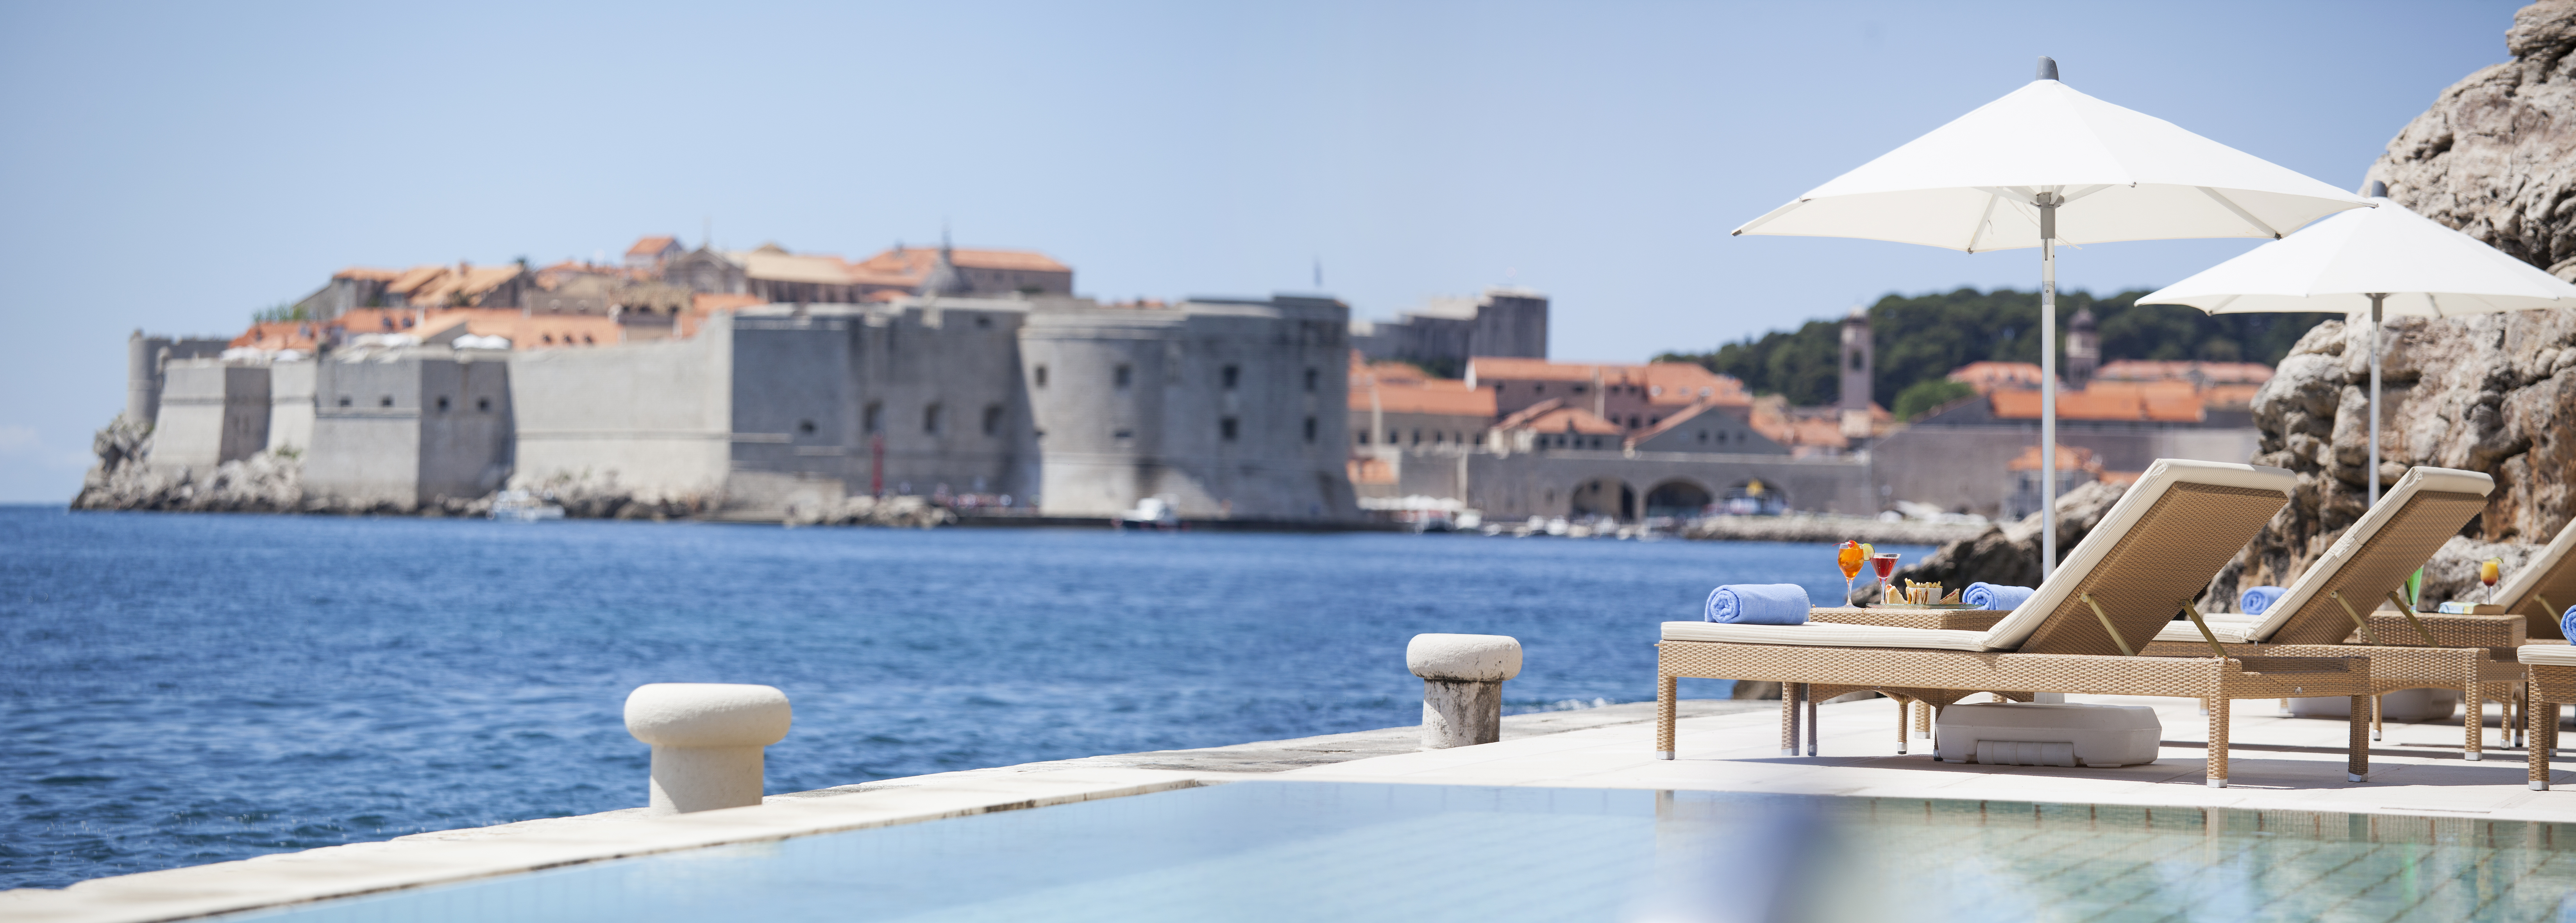 Croatia holidays to Dubrovnik